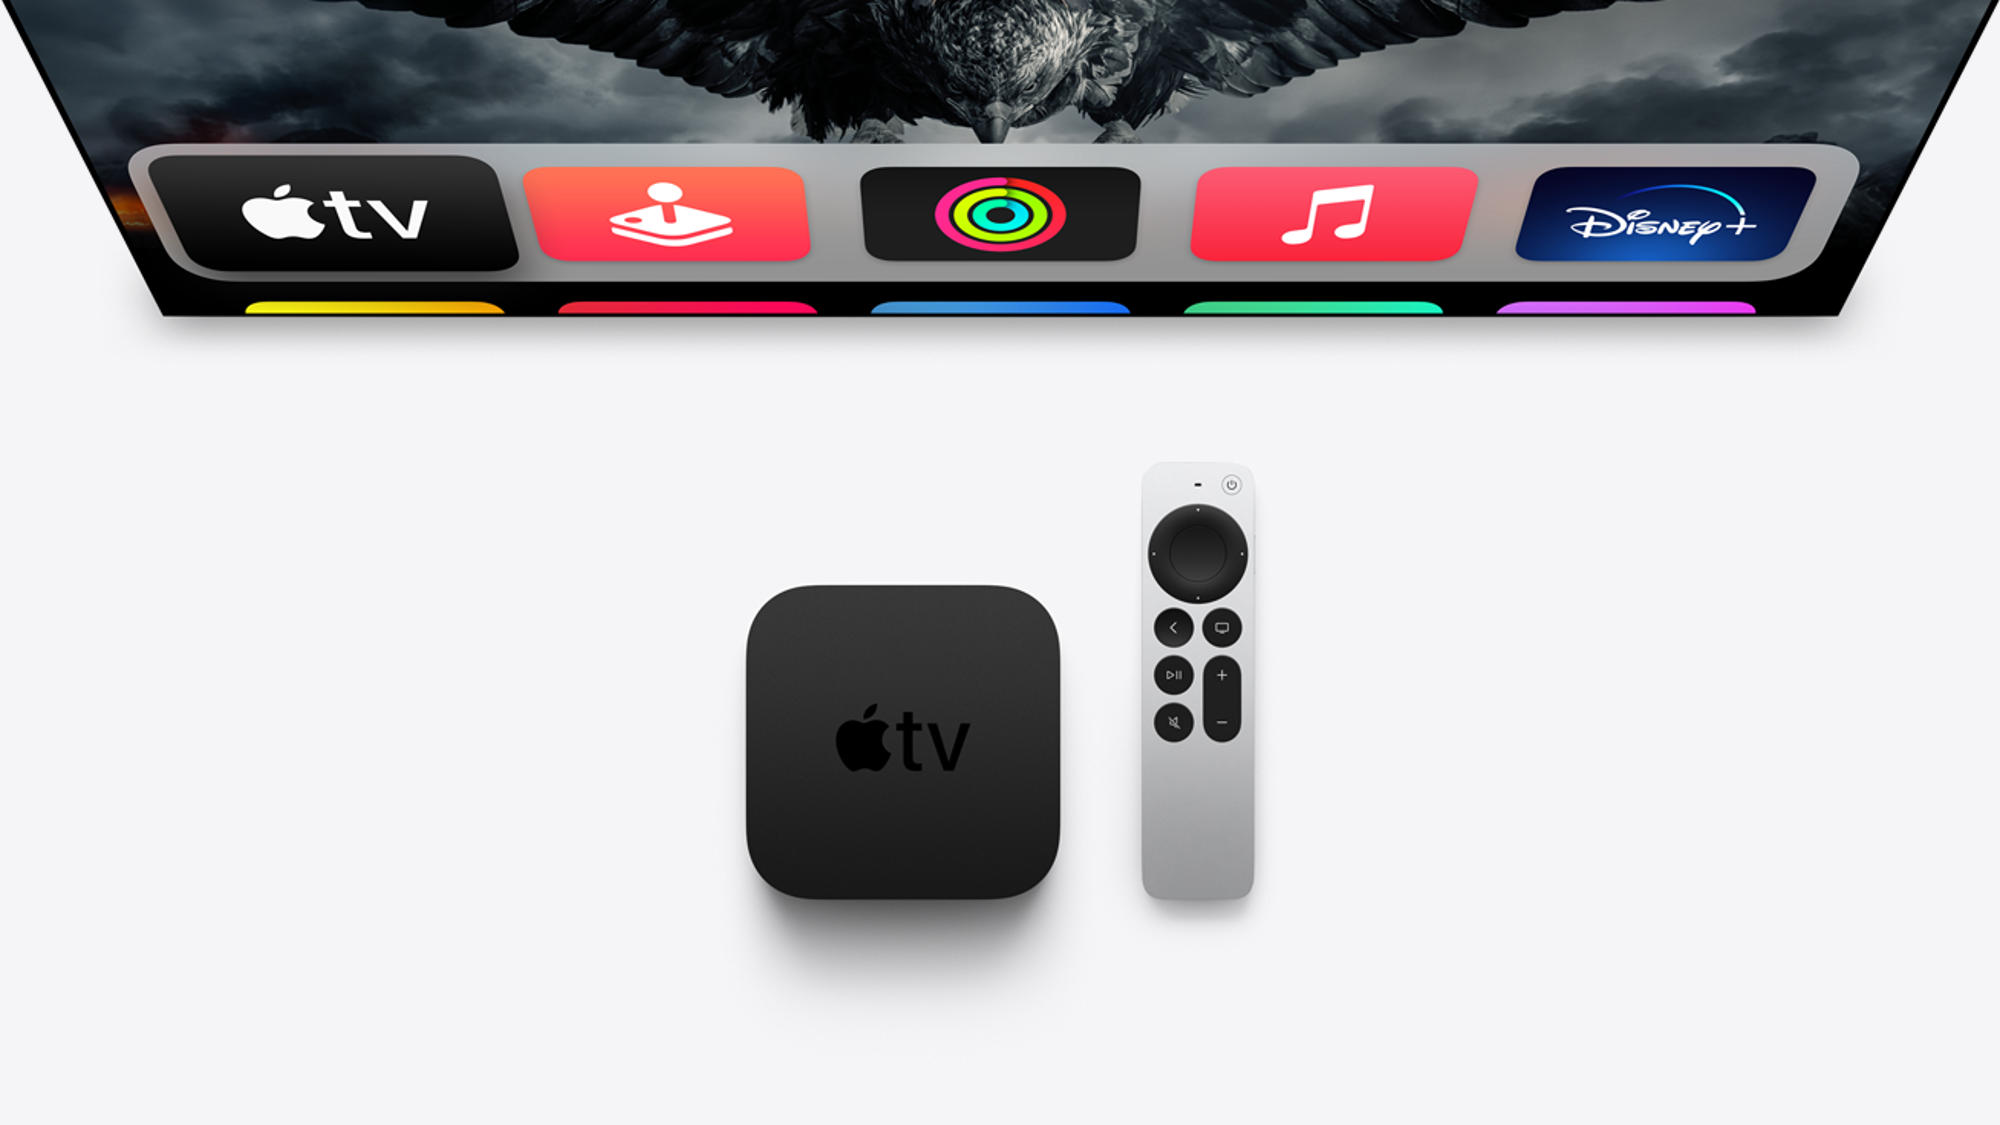 Apple introduces an updated Apple TV 4K with a redesigned remote